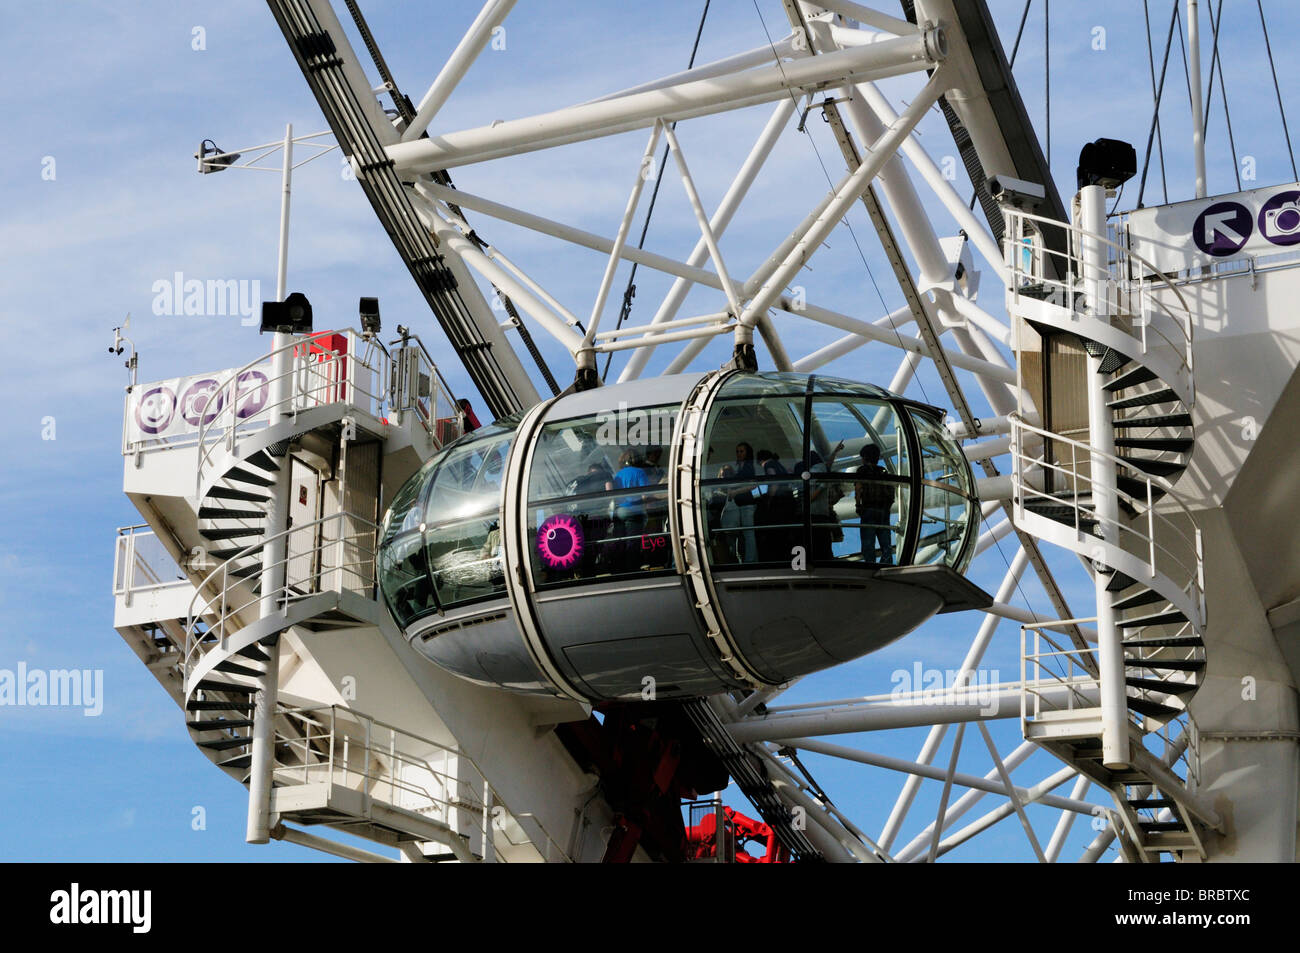 Close up of a London Eye Observation Capsule, London, England, UK - Stock Image